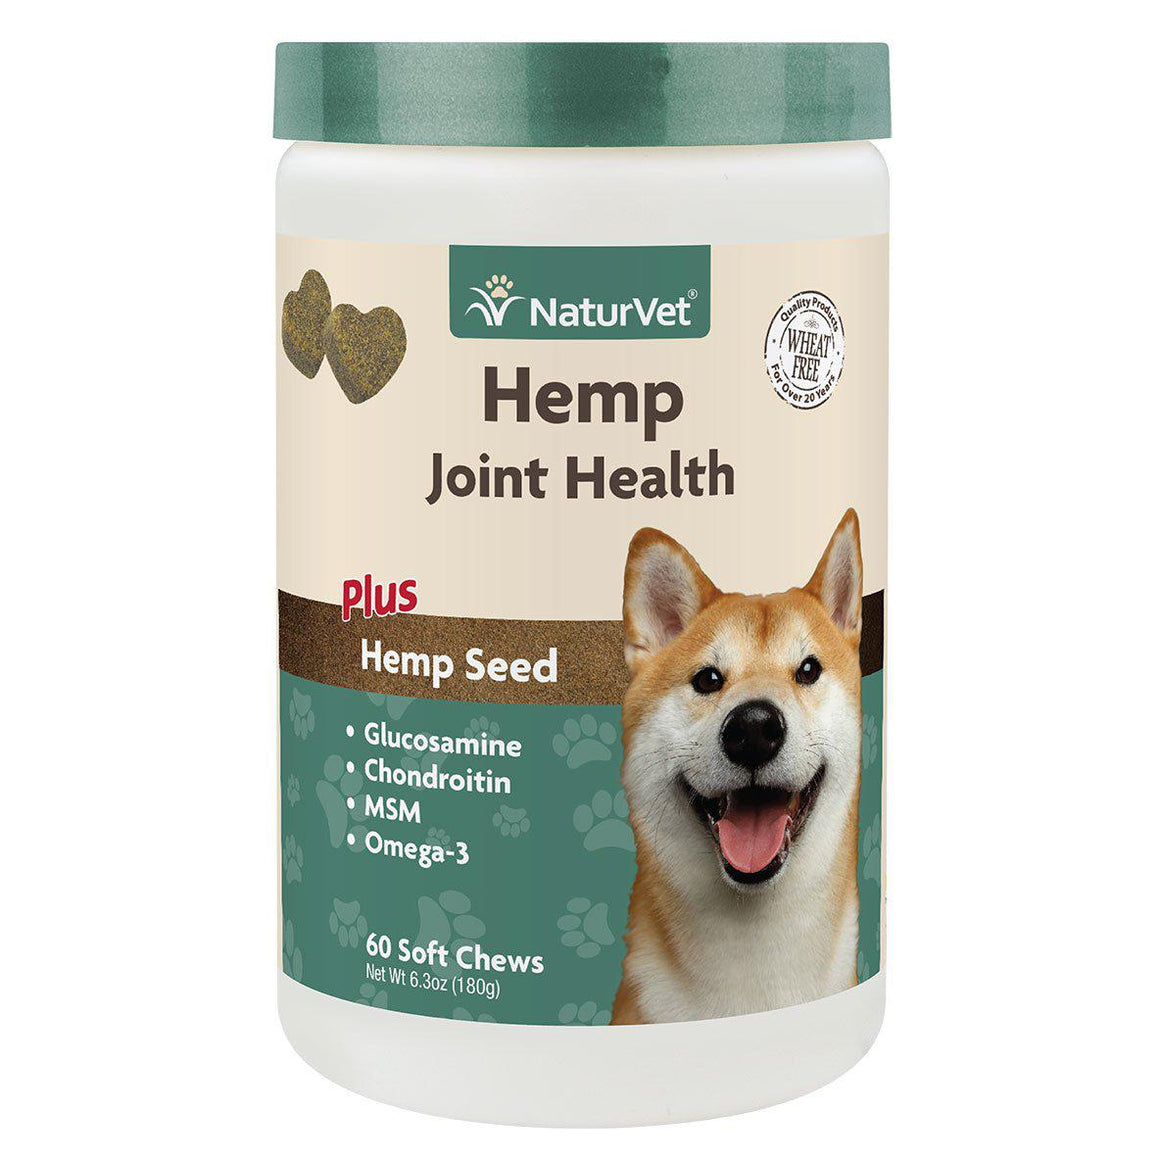 NaturVet Hemp Joint Health Soft Chews Dog Supply-Le Pup Pet Supplies and Grooming